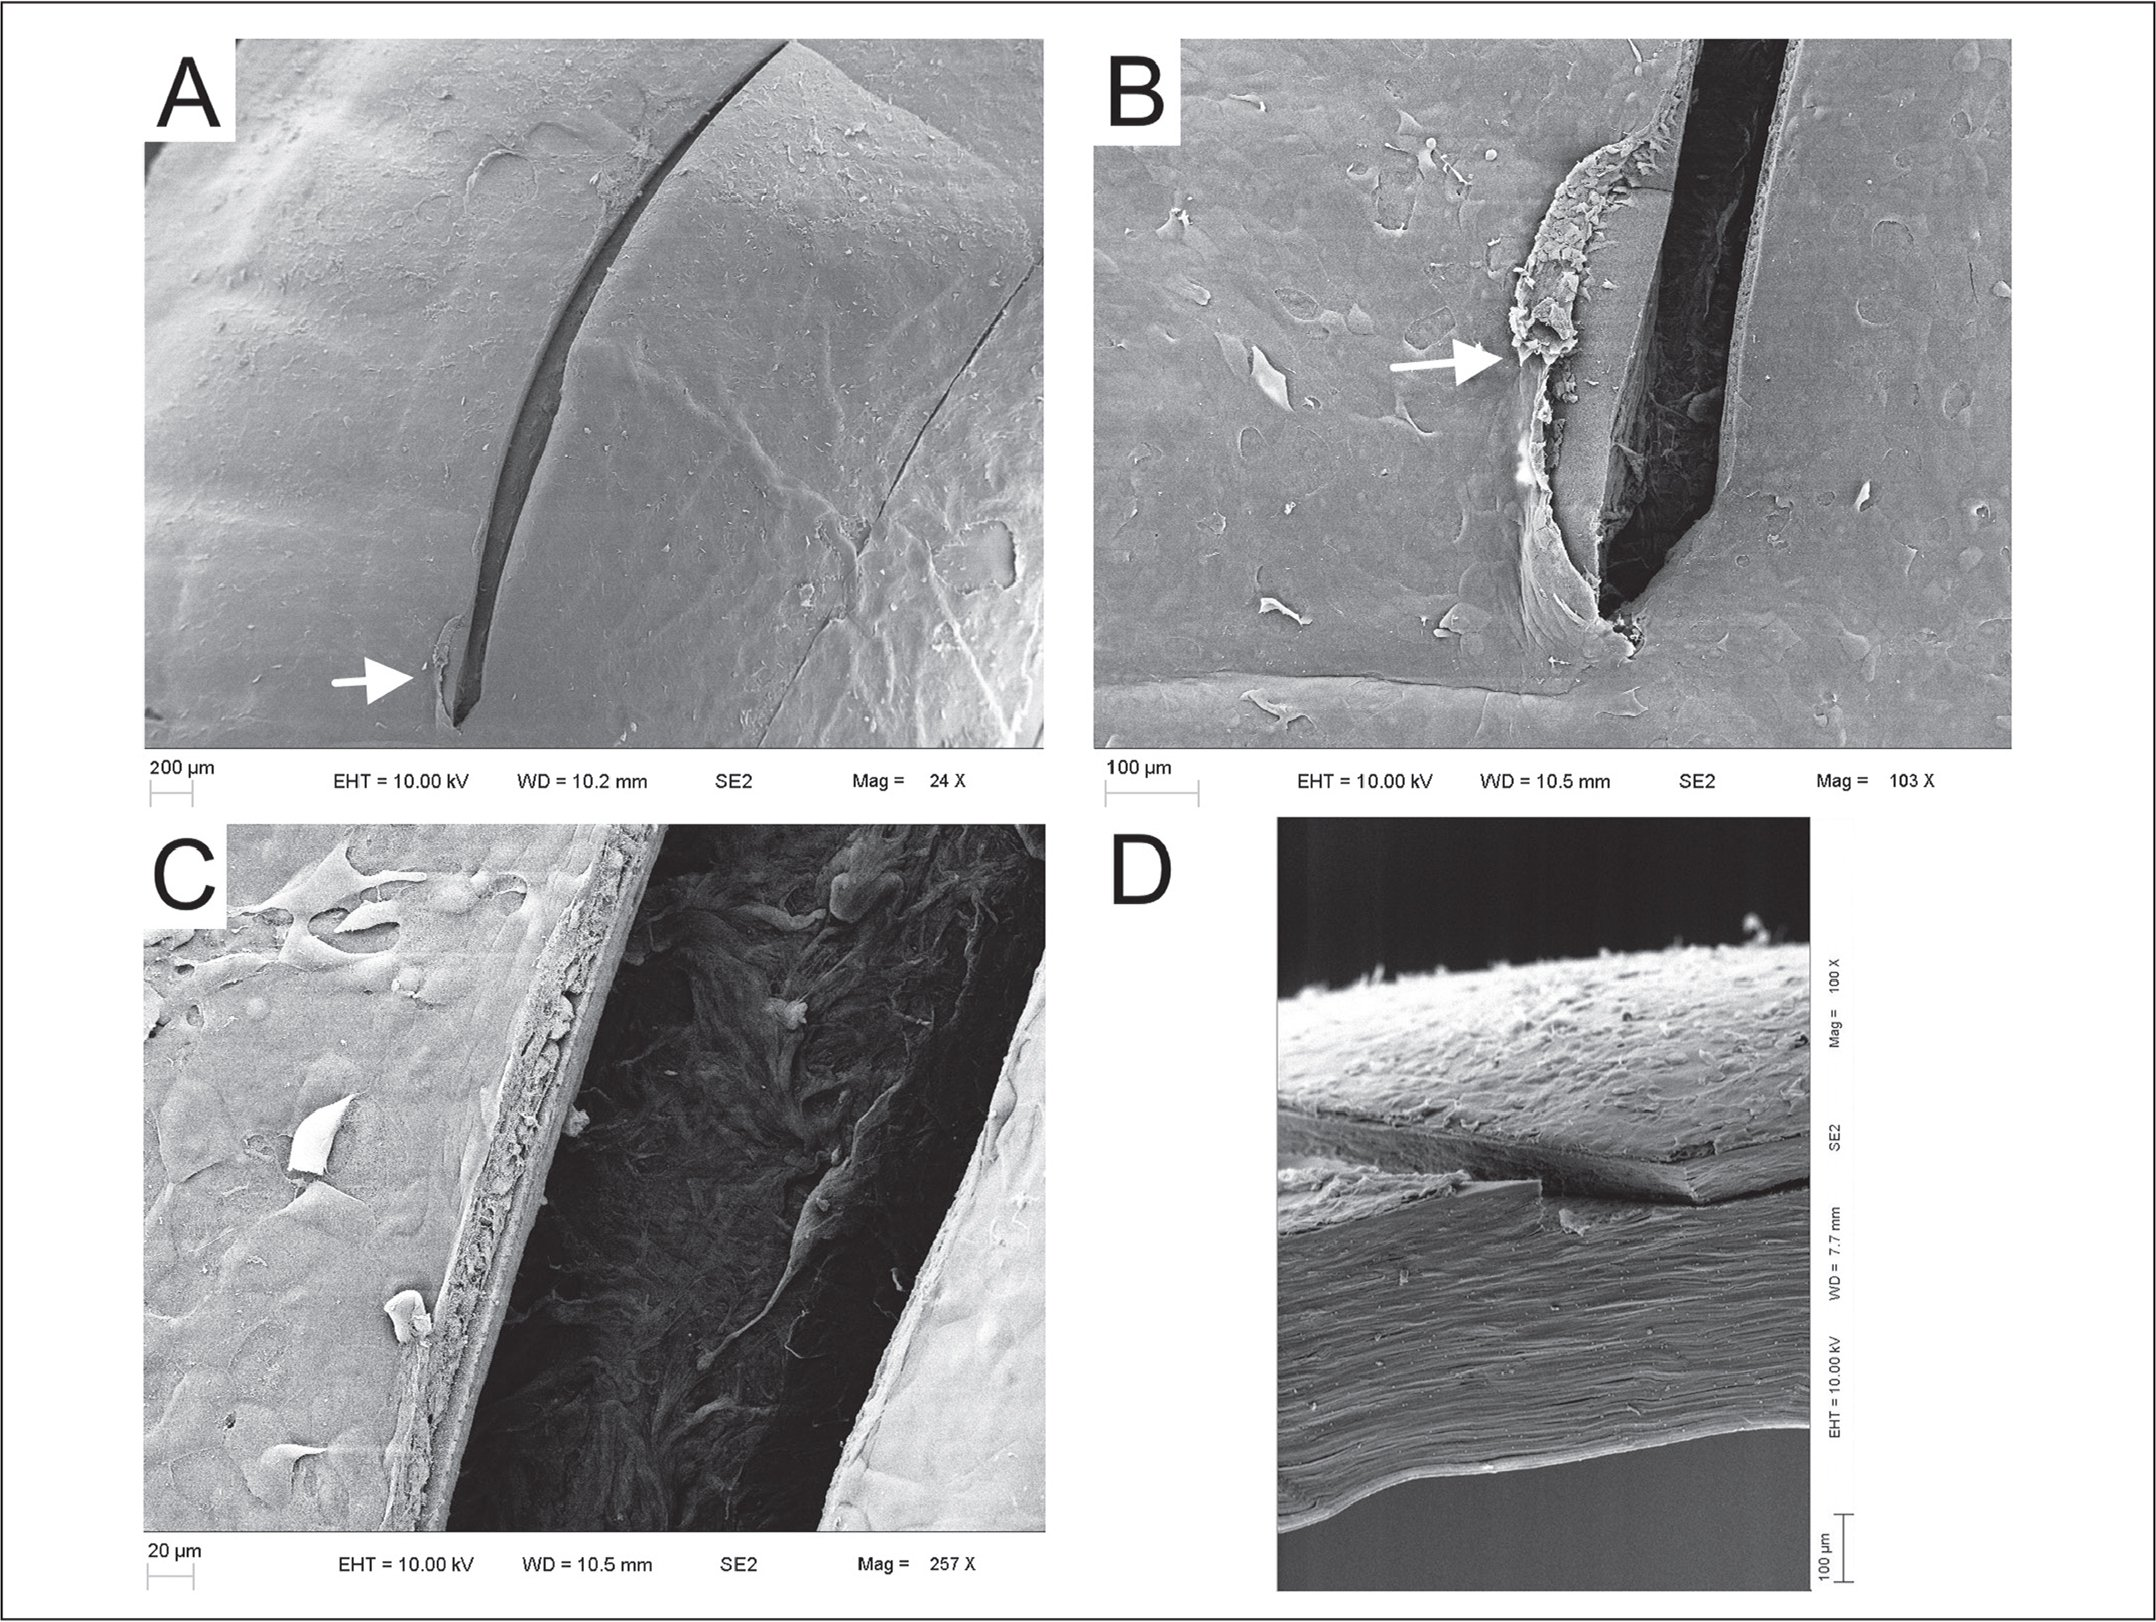 En face scanning electron microscopy of small incision lenticule extraction incision at (A) 24×, (B) 103×, and (C) 257× magnification. The white arrows indicate a small area of epithelial detachment at the side of the incision. (D) Incision architecture as viewed from the sagittal dissection at 100× magnification.